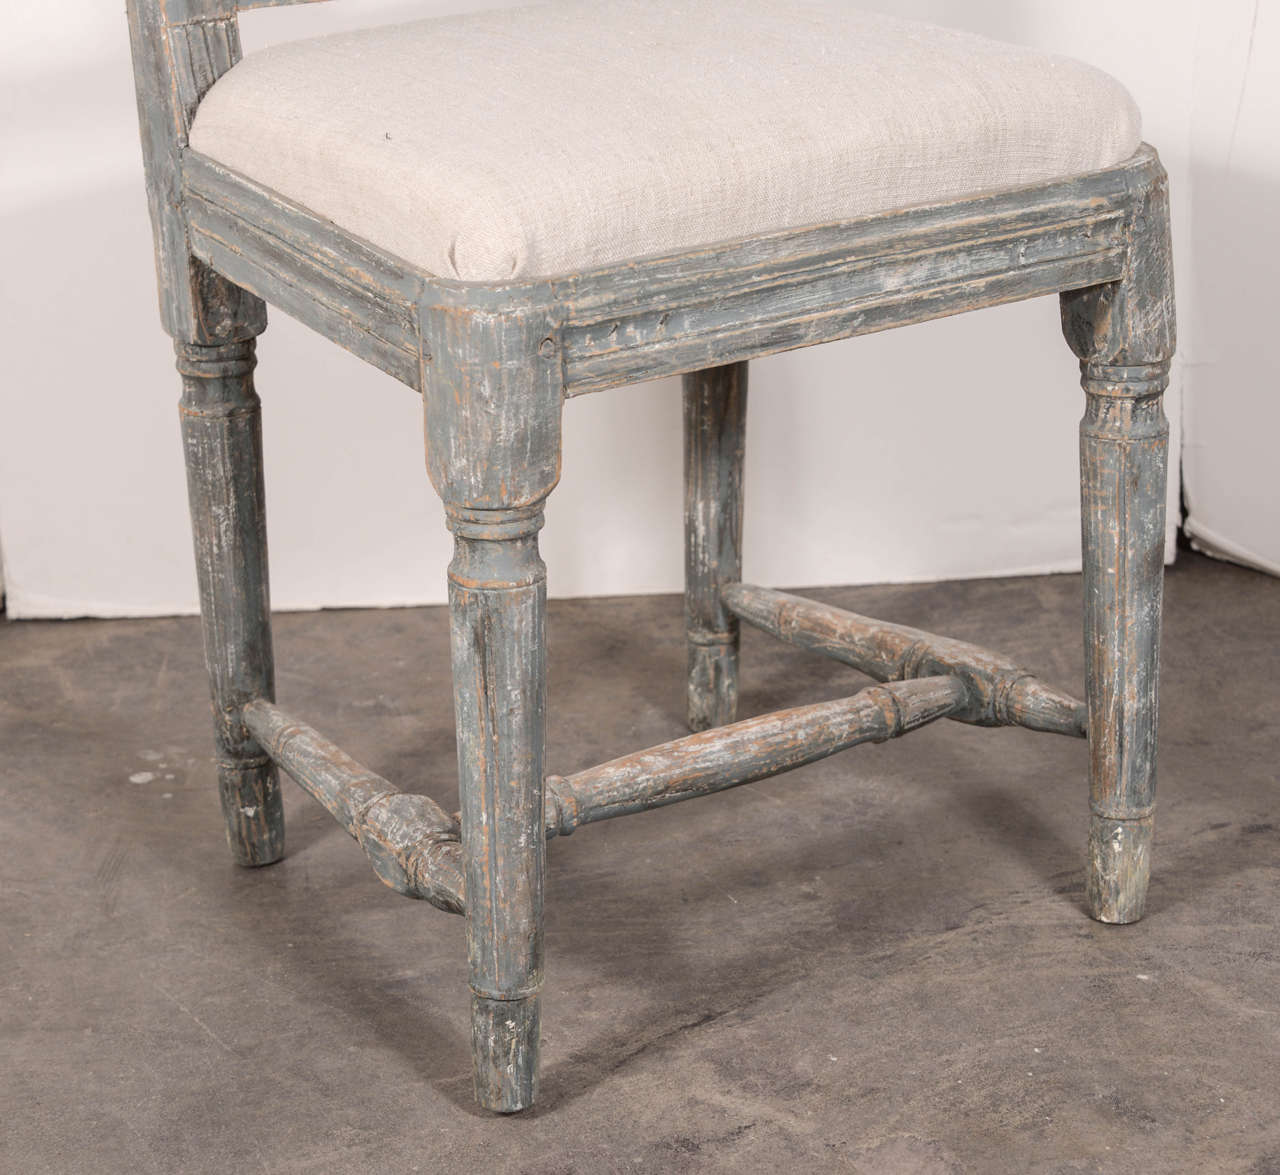 Swedish Gustavian Blue Painted Slat Back Dining Chairs from circa 1790 10